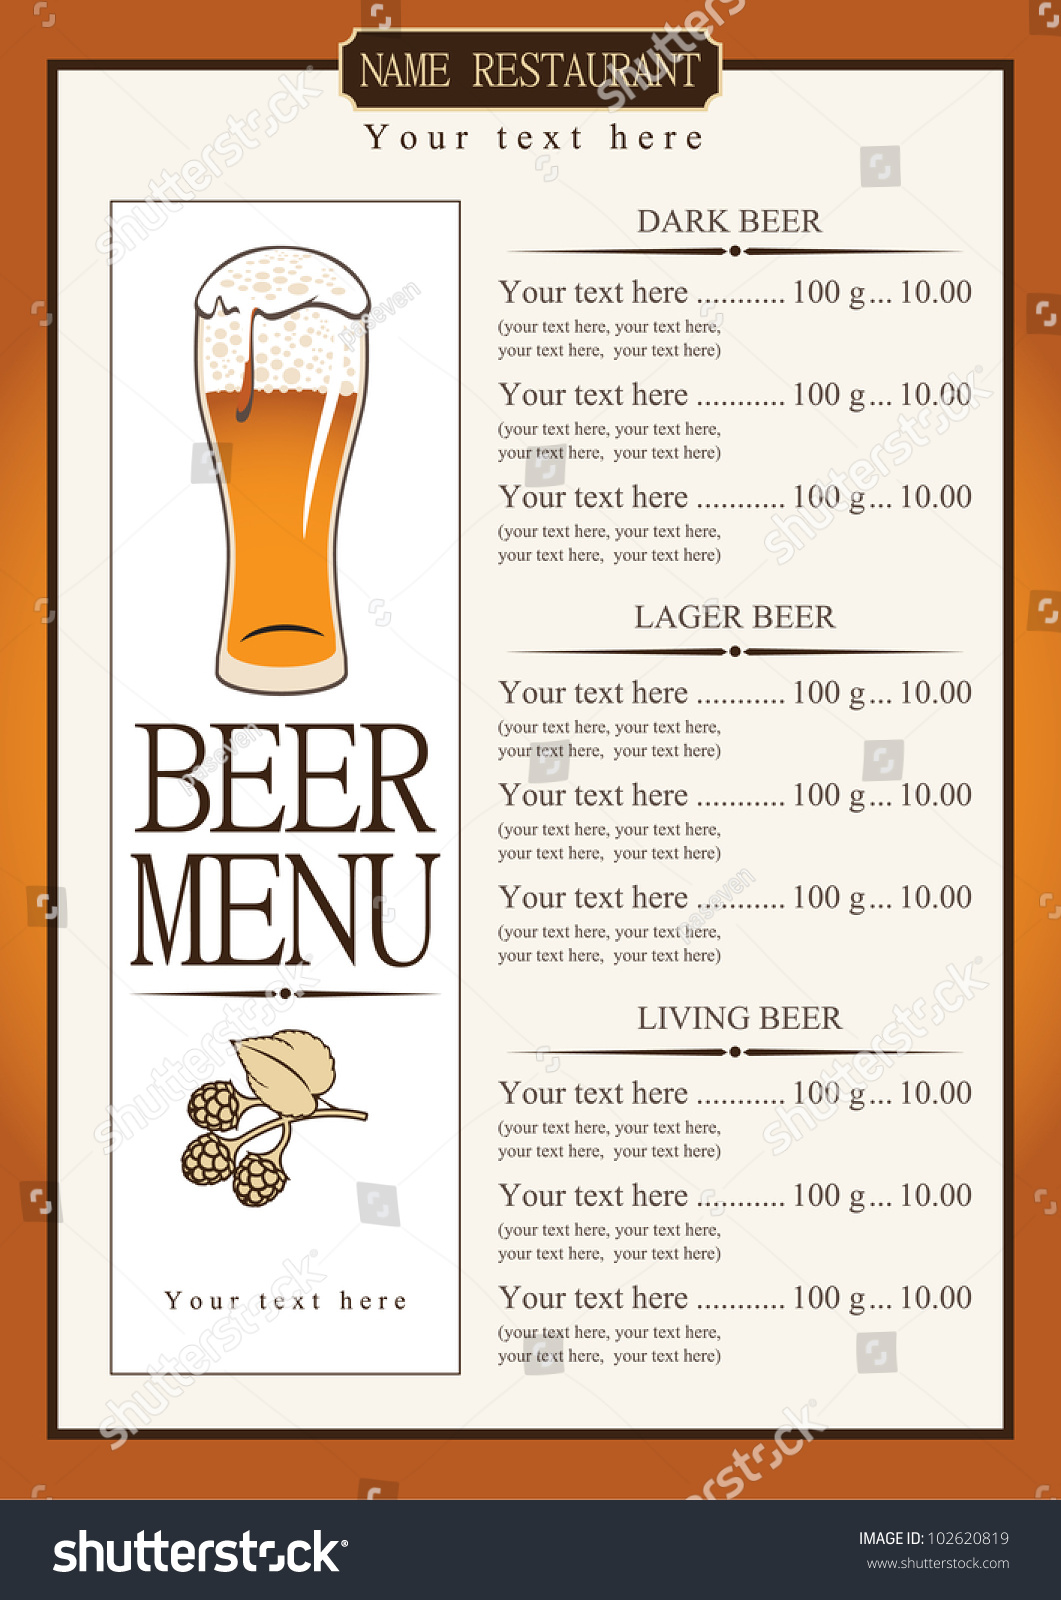 Menu List Beer Stock Vector 102620819 - Shutterstock